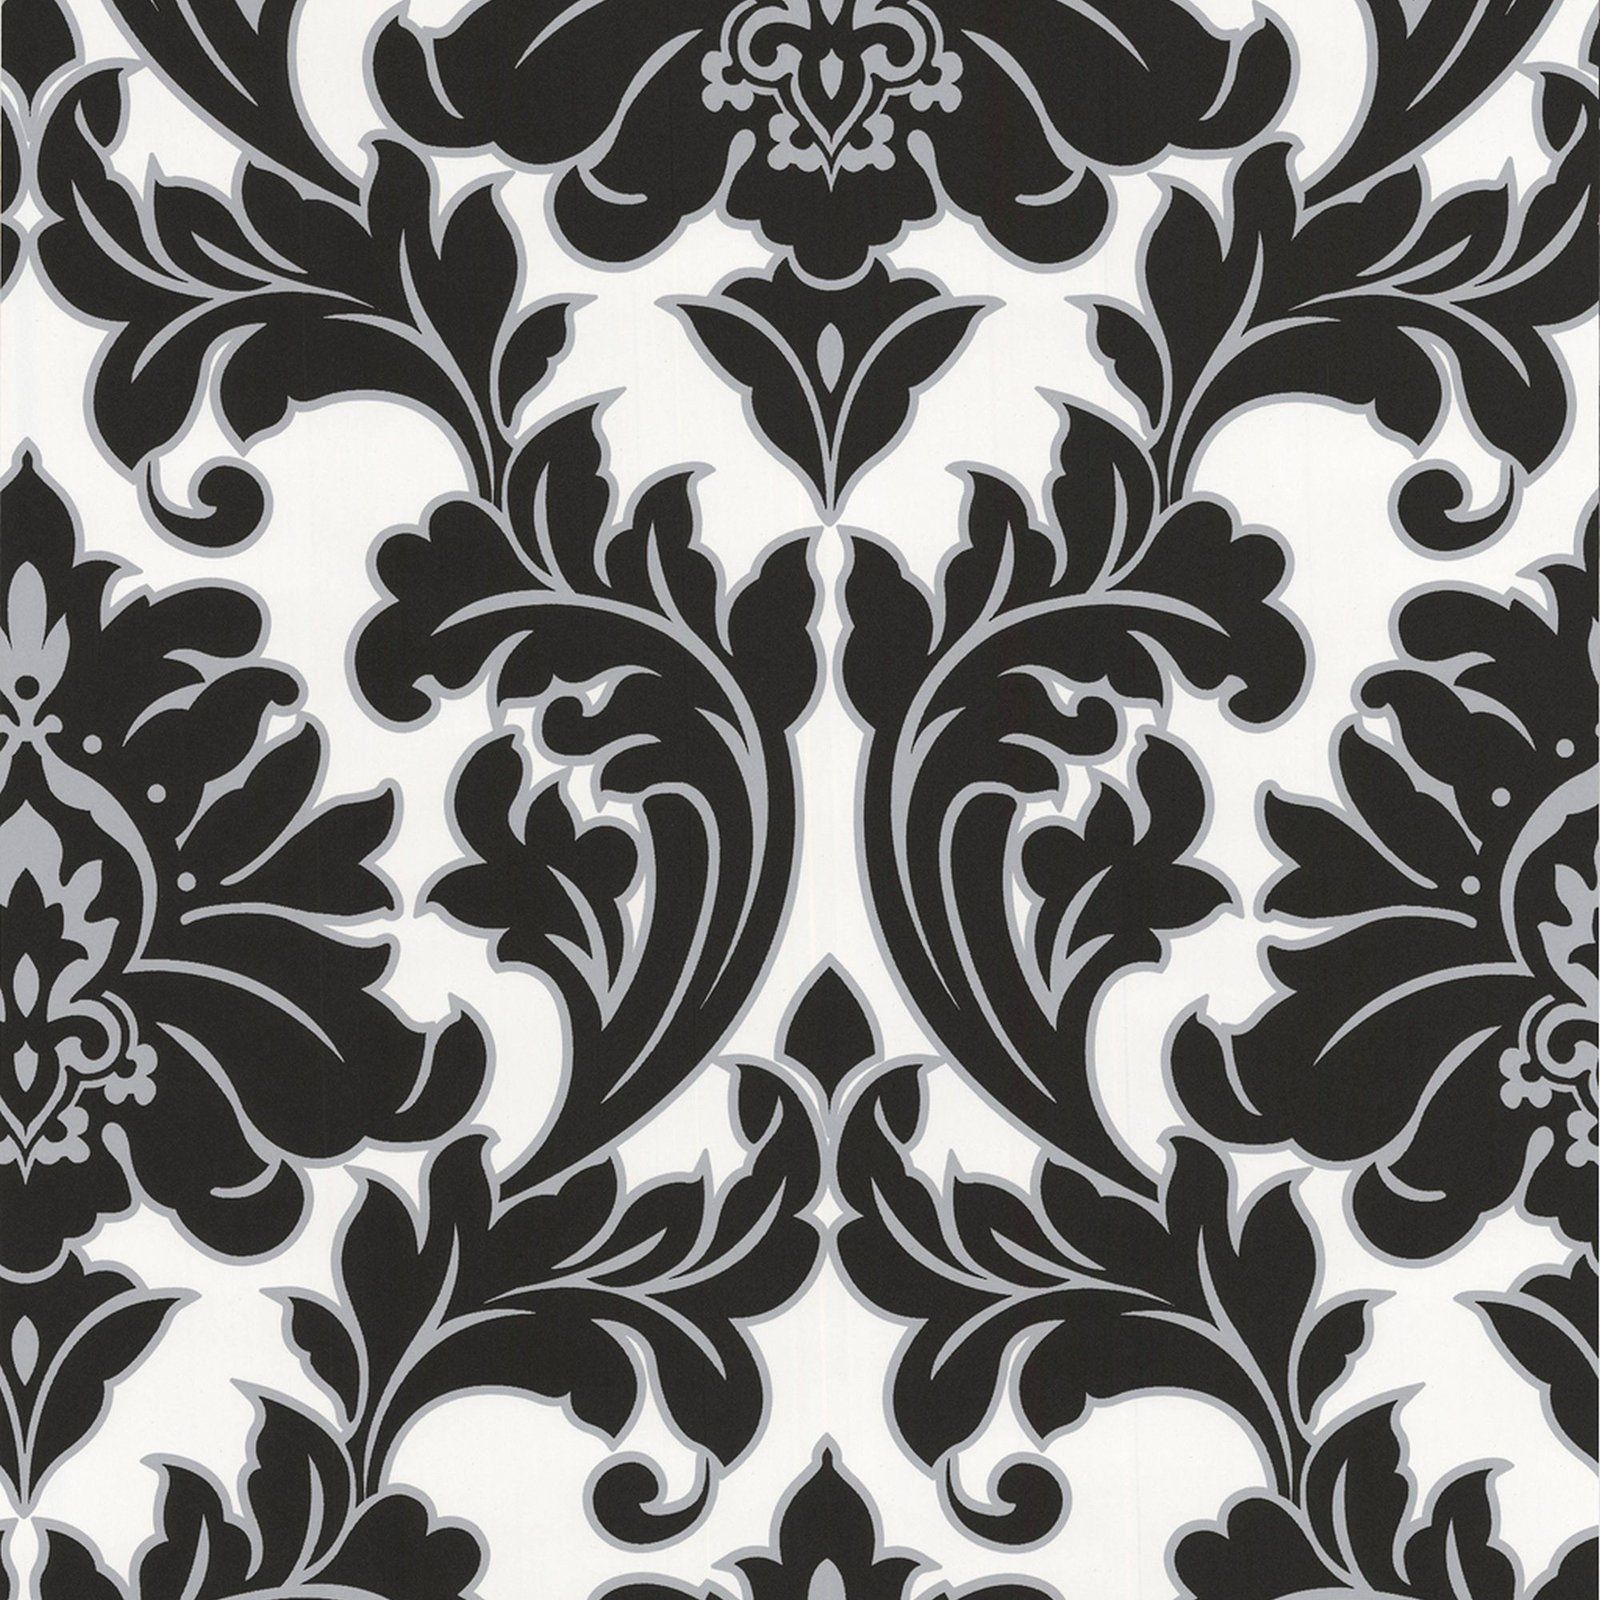 Graham & Brown Majestic Wallpaper Black and White in 2019